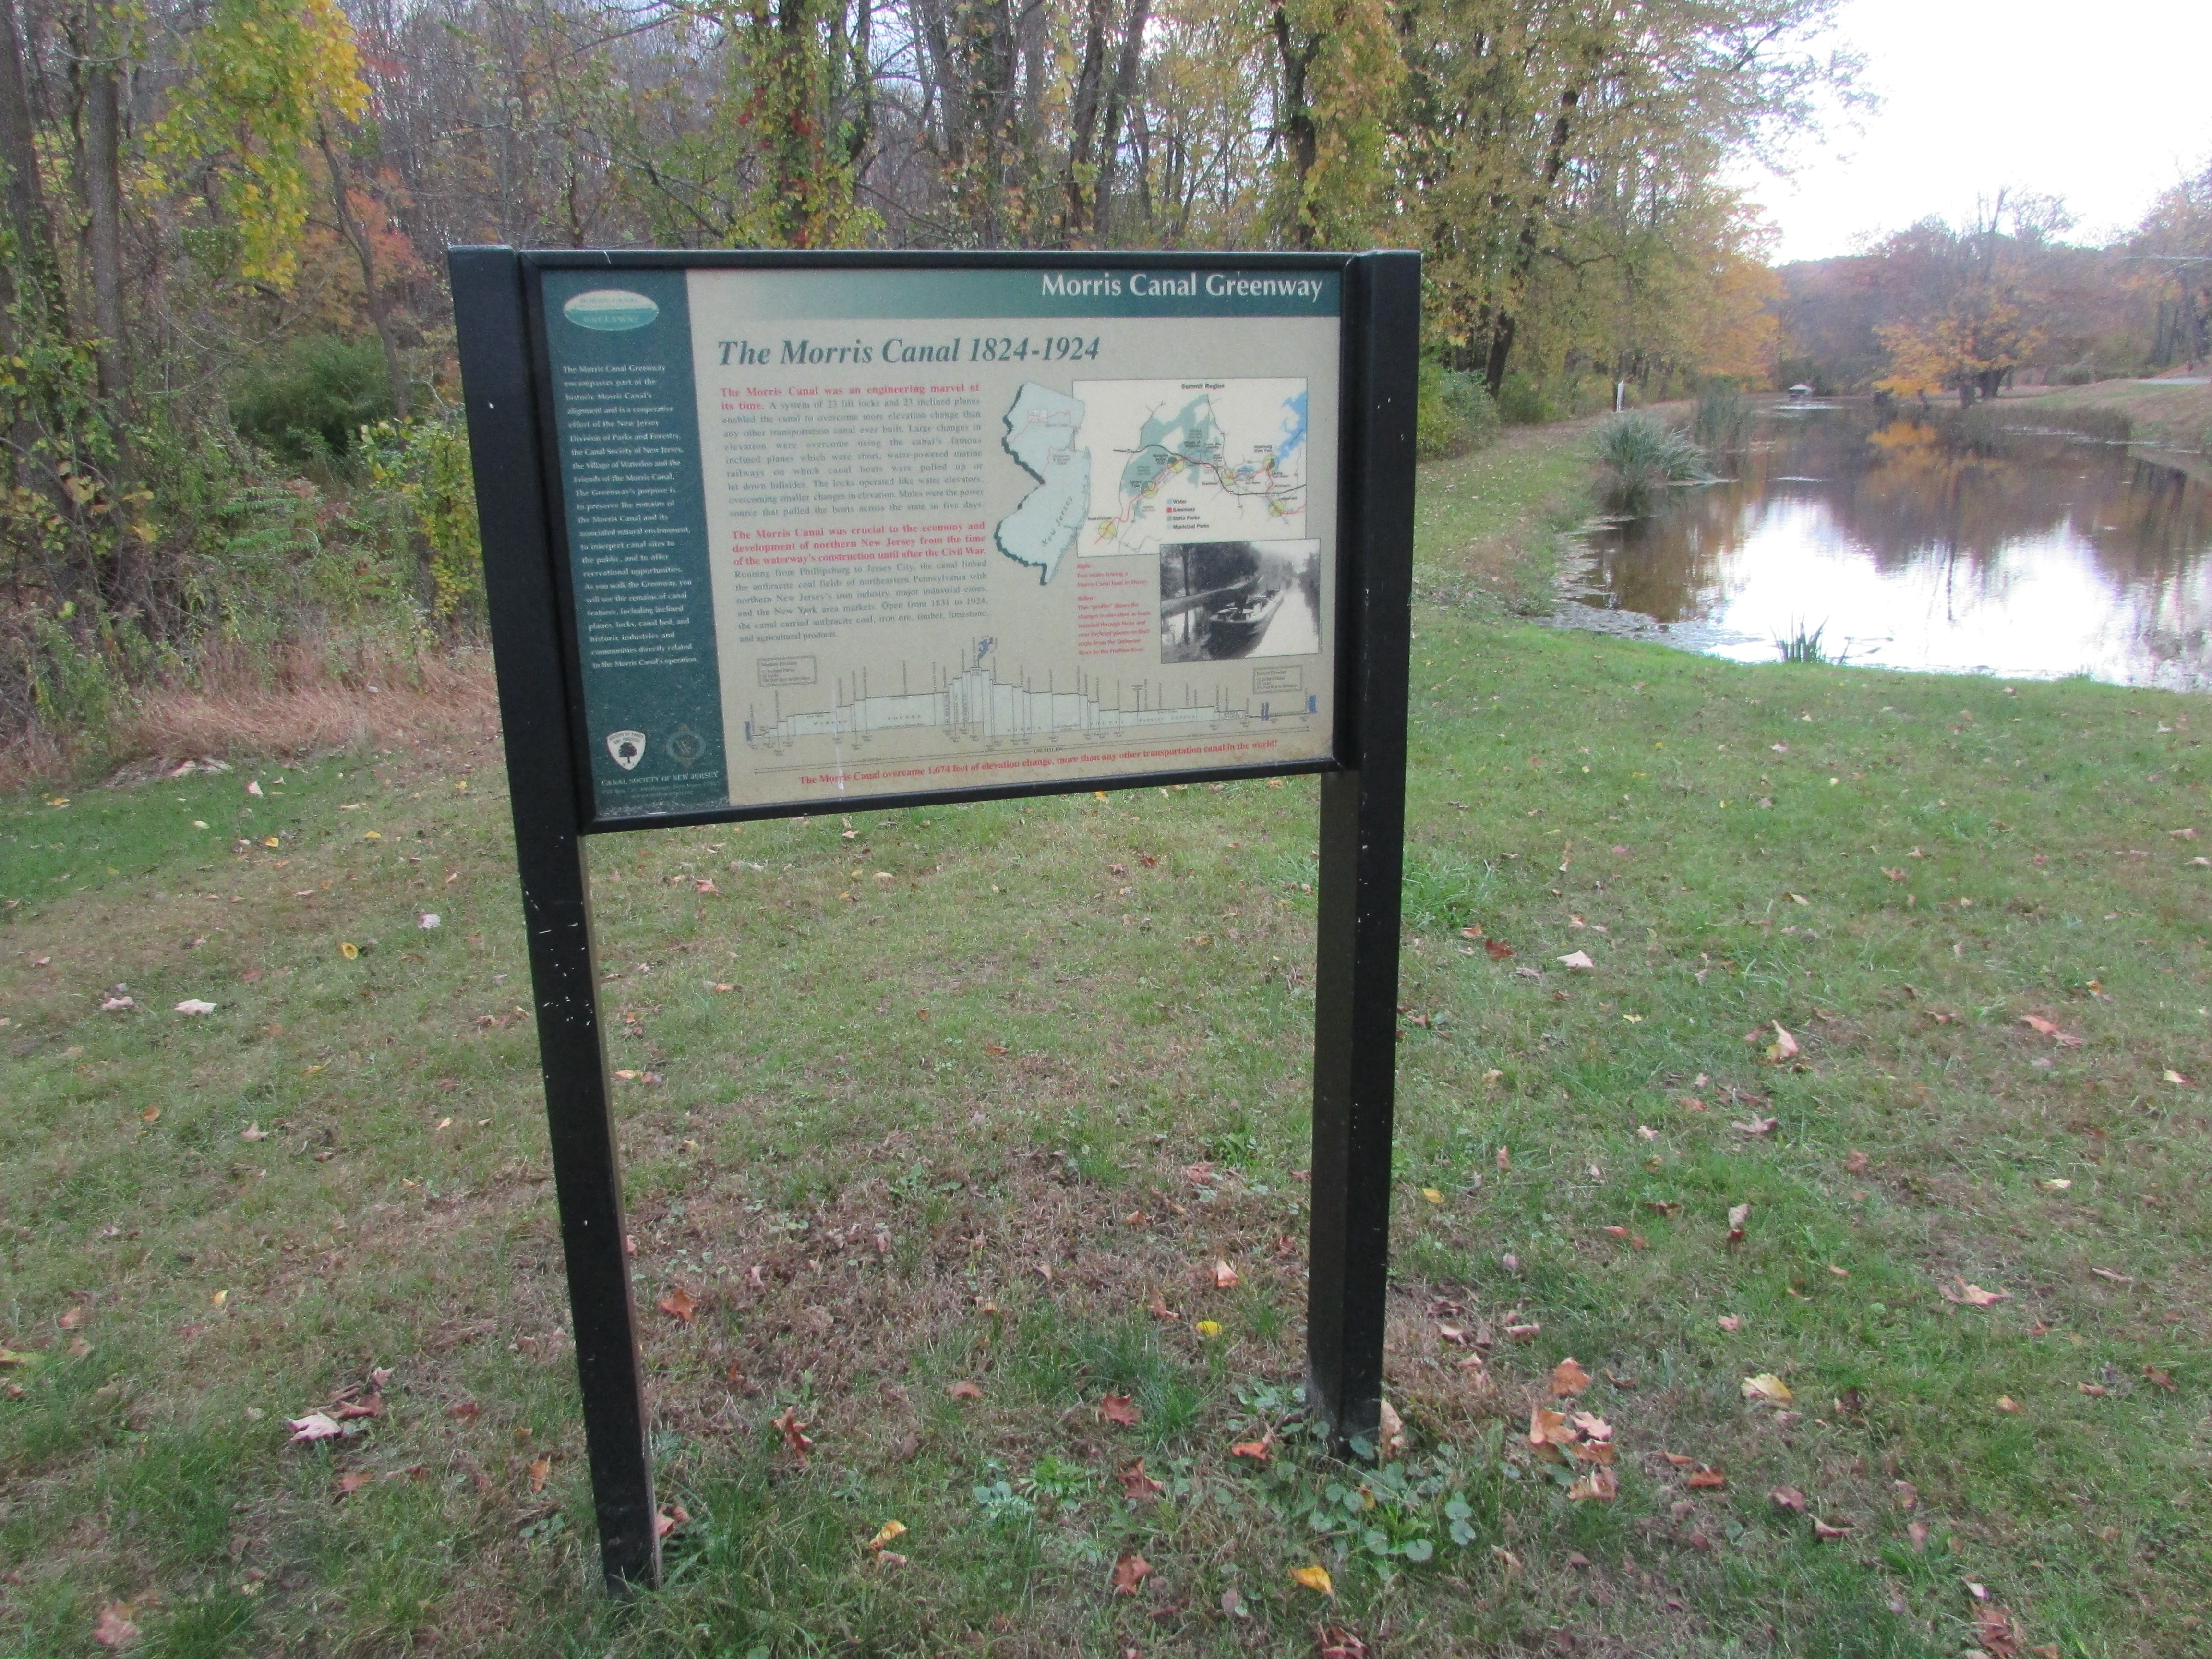 The Morris Canal 1824-1924 Marker